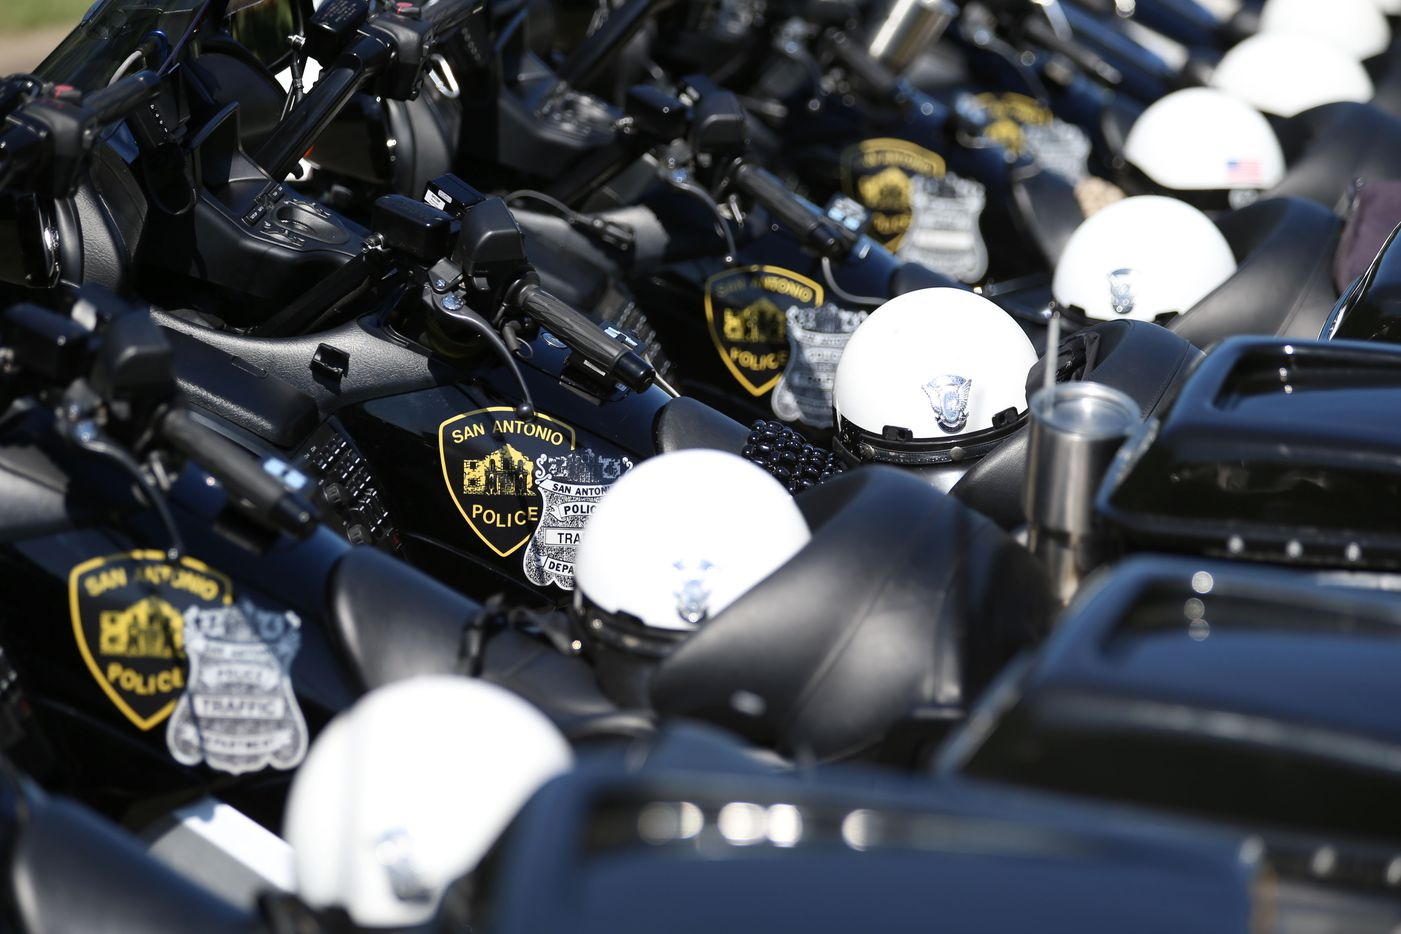 The motorcycles of San Antonio police officers are shown before the funeral for Dallas police sergeant Michael Smith at Watermark Church in Dallas Thursday July 14, 2016. Smith and four other officers were killed during an attack following a peaceful Black Lives Matter protest on July 7. (Andy Jacobsohn/Staff Photographer)